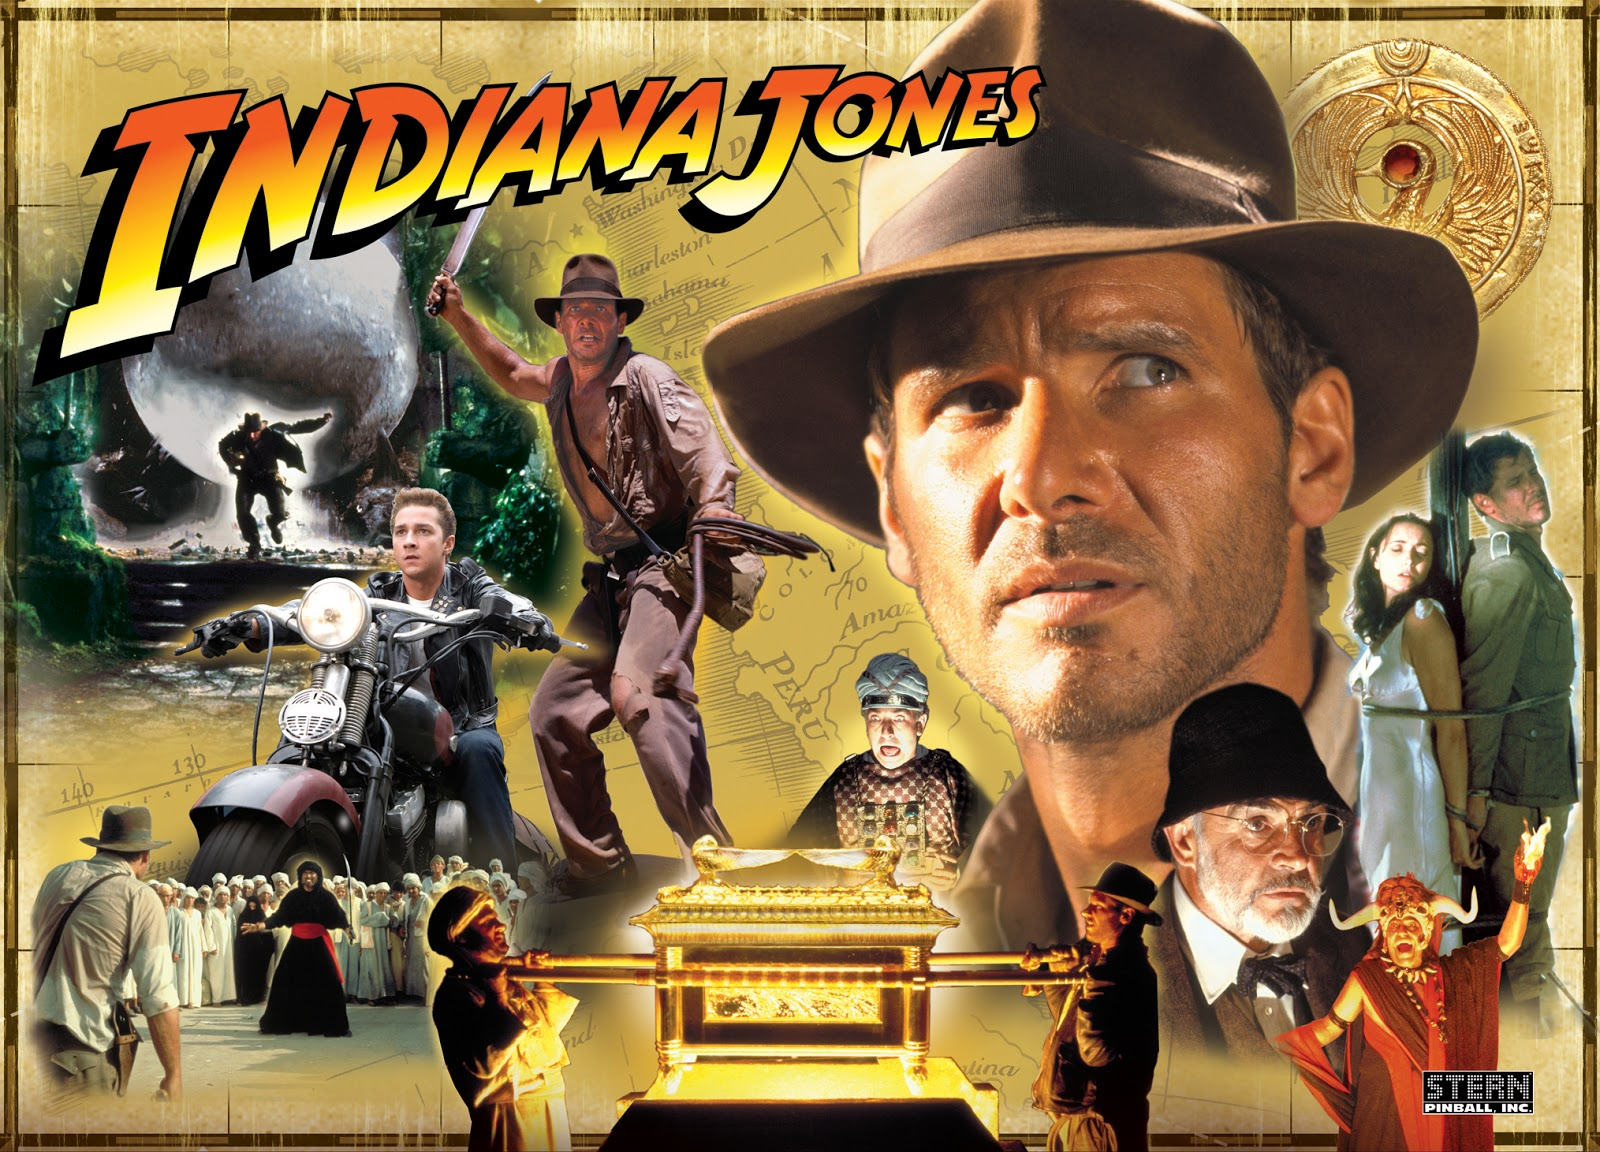 the star wars defender the future of indiana jones